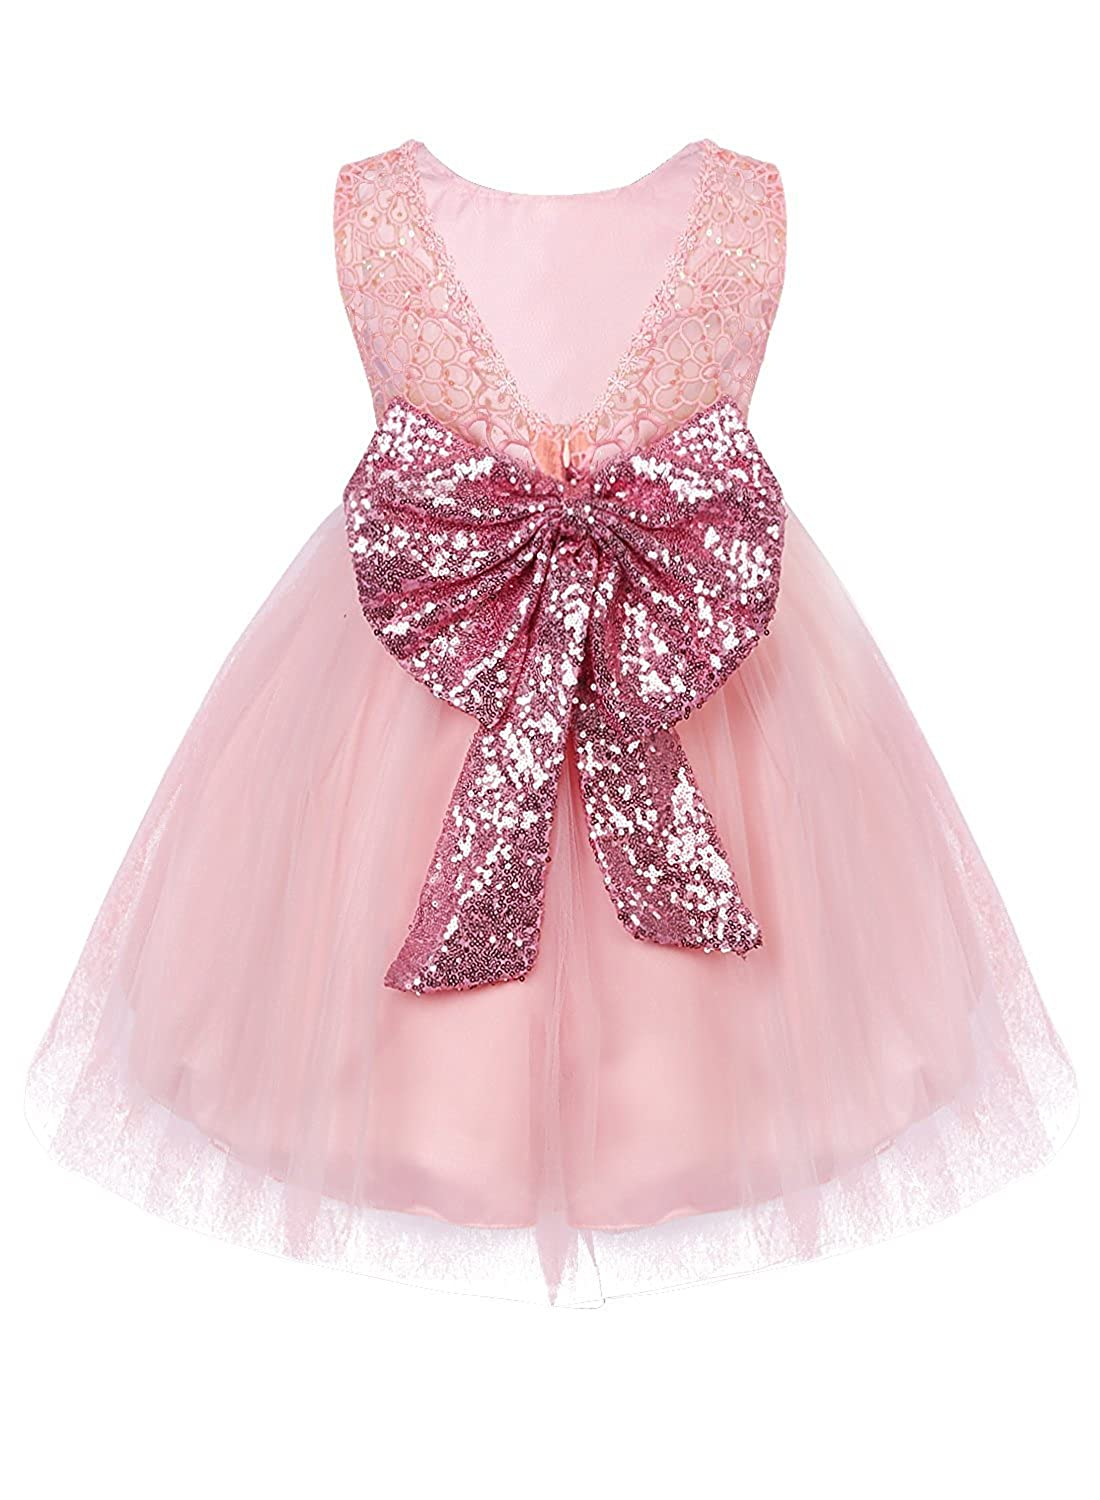 IWEMEK Baby Girls Sequins Bowknot Floral Princess Dress Wedding Birthday Gown